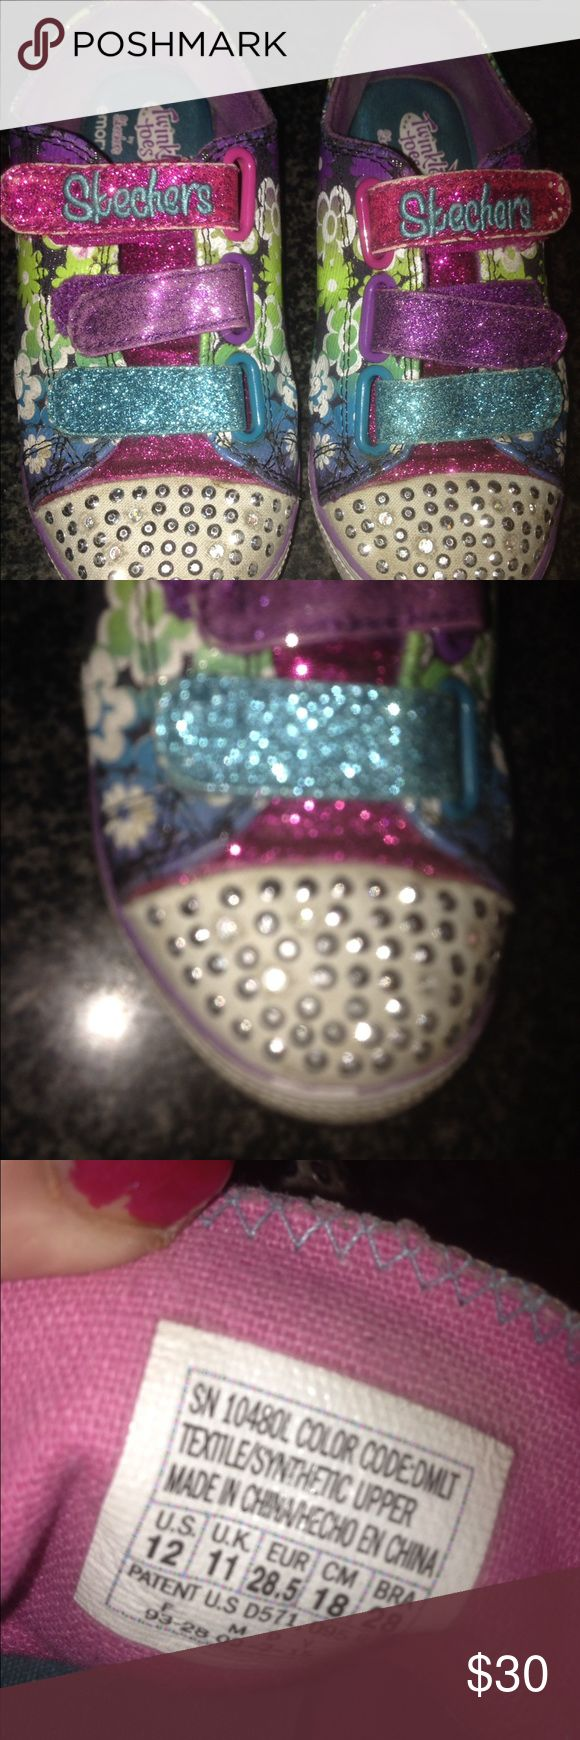 Kids Skechers that light up Twinkle Toes SZ 12 Adorable Skechers for kids called Twinkle Toes    When you walk, the silver buttons light up in bright blue and pink. Gently used lots of wear left. Velcro closures. Any girl would love these. Heck, I love these lol awesome sneakers for an awesome little one. Skechers Shoes Sneakers